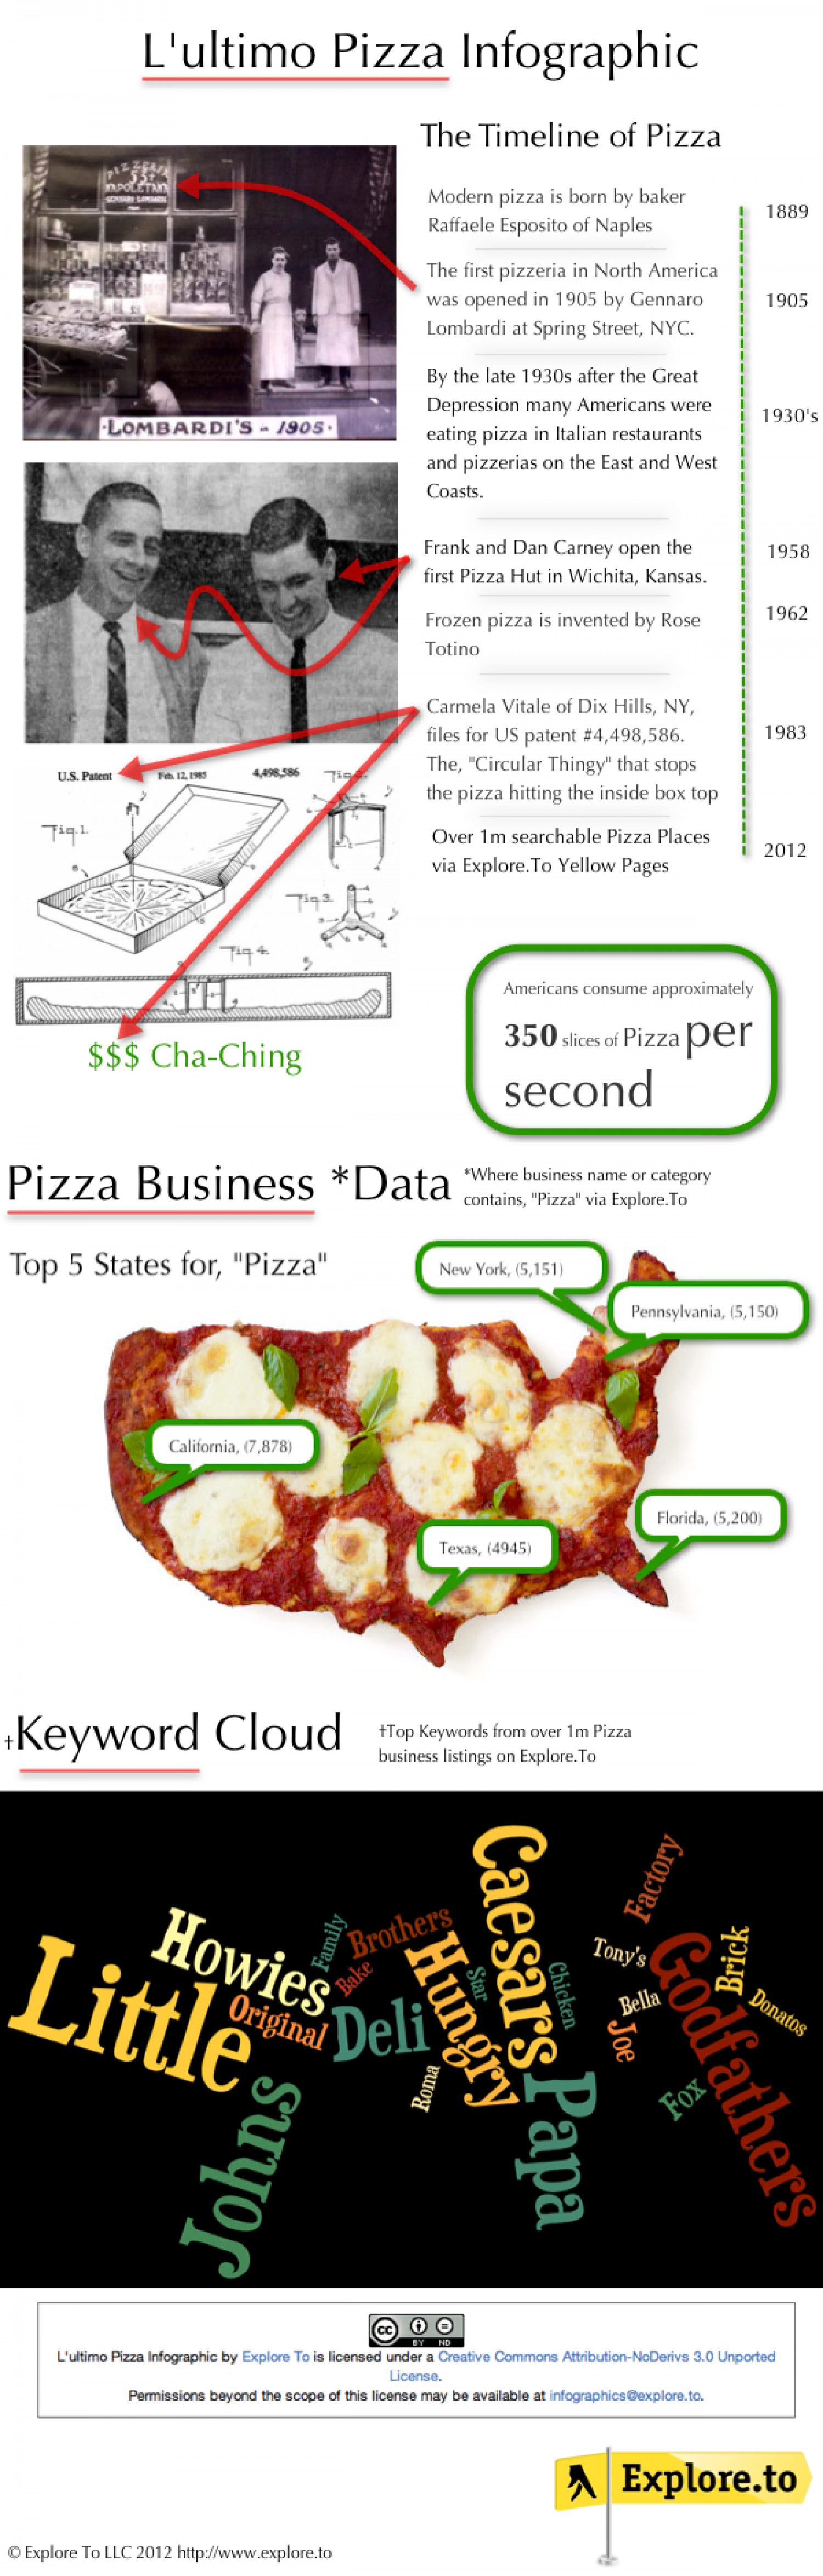 L'ultimo Pizza Infographic Infographic